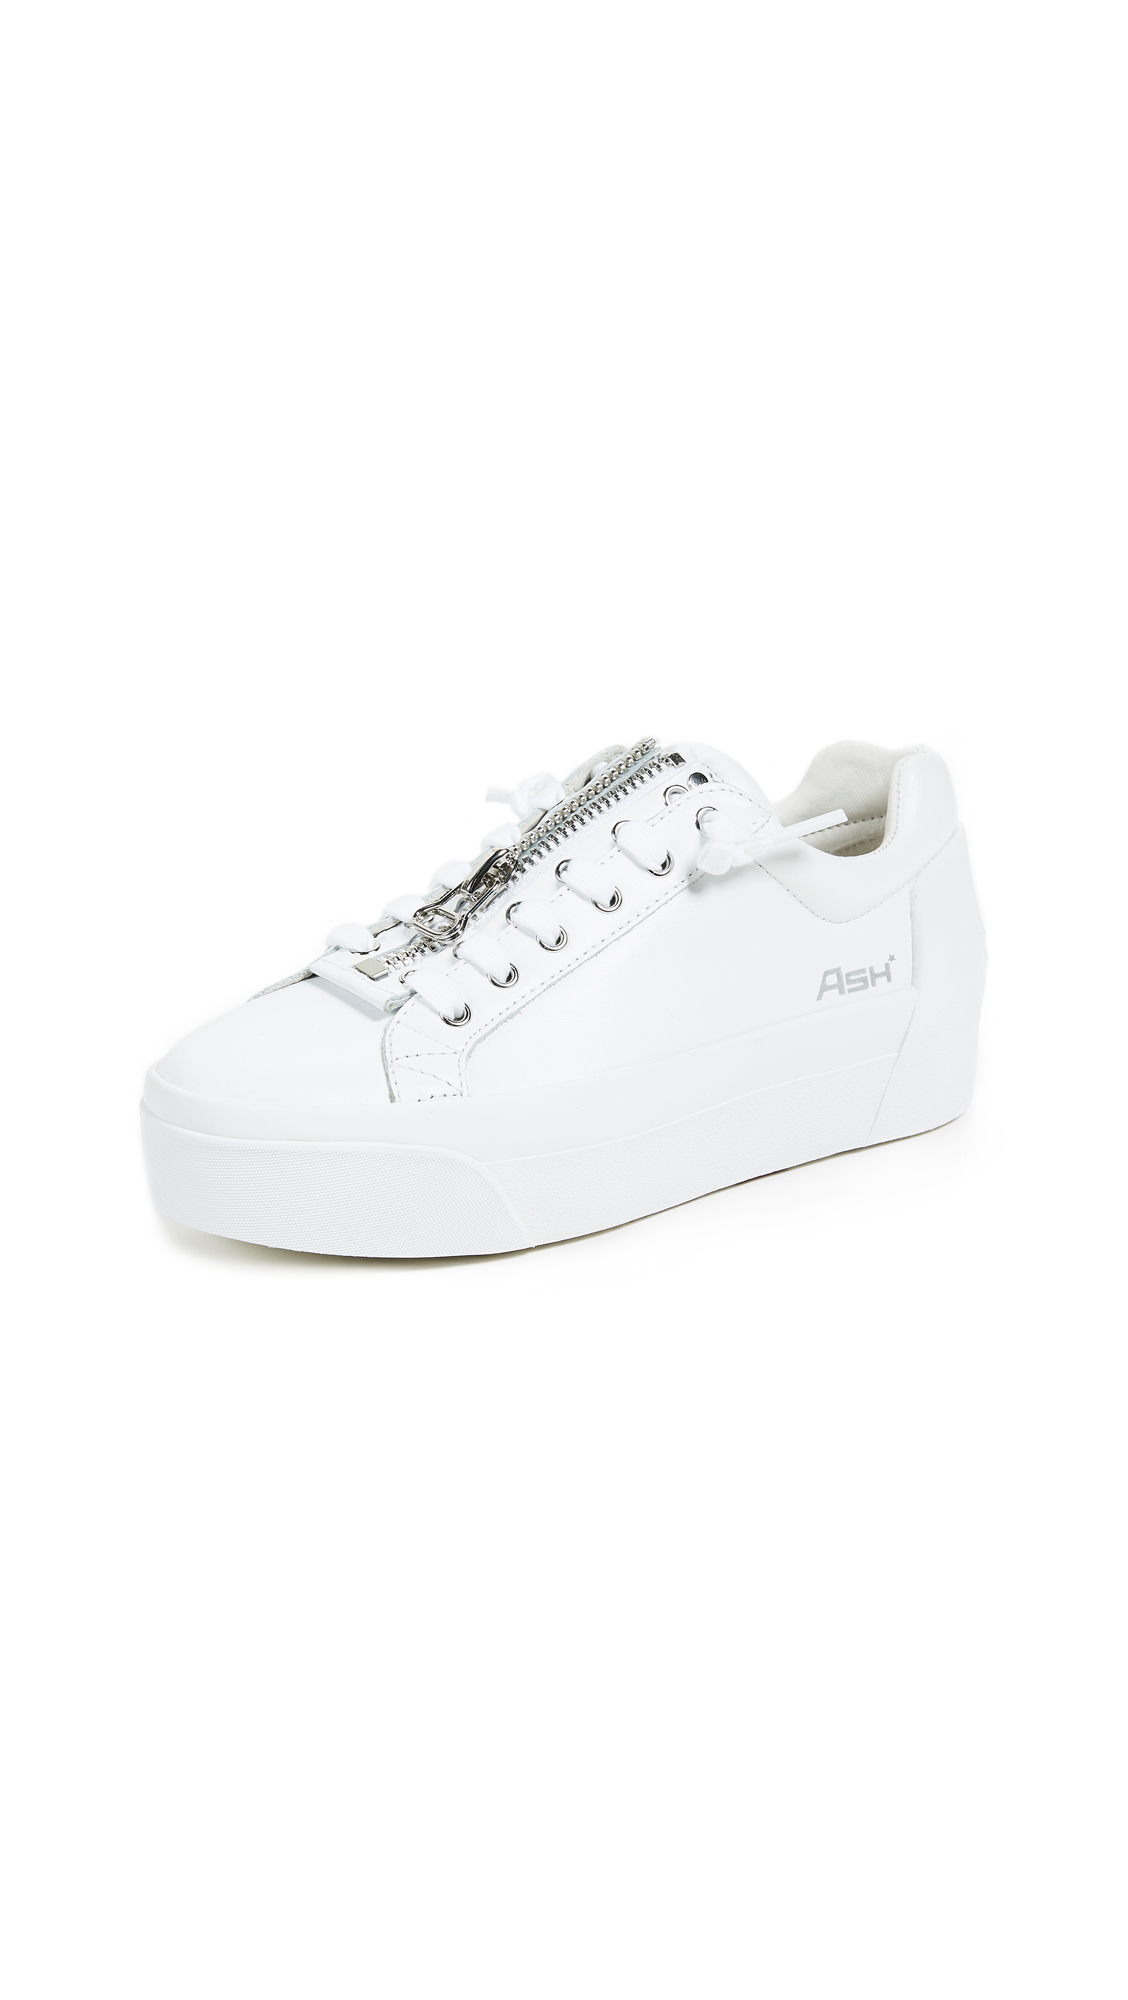 Ash Buzz Platform Sneakers - White